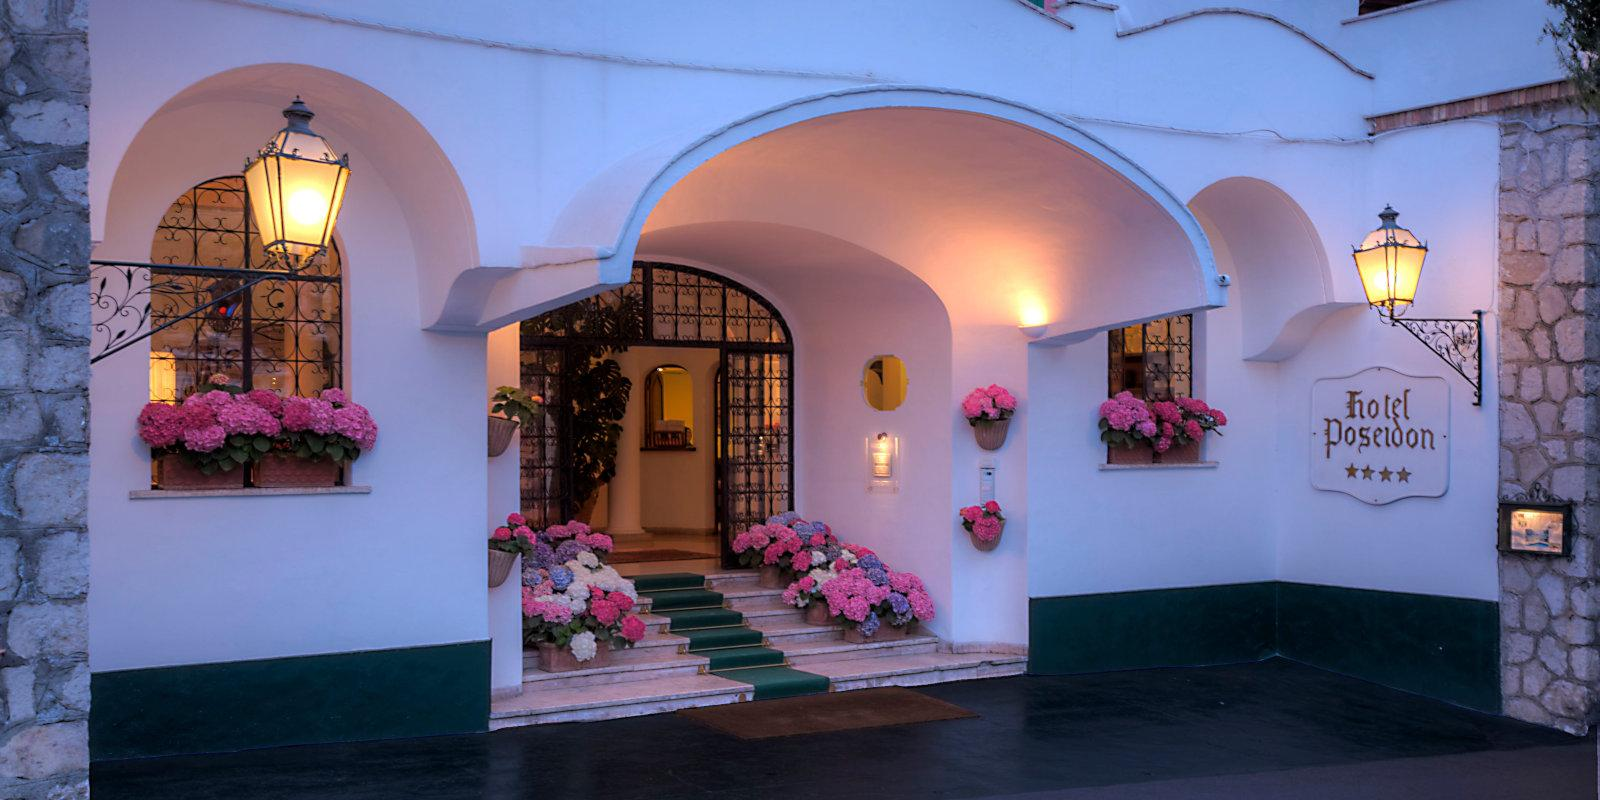 For gay travellers to the Amalfi Coast, Hotel Poseidon is a more affordable option than other hotels in the area, but just as pretty!